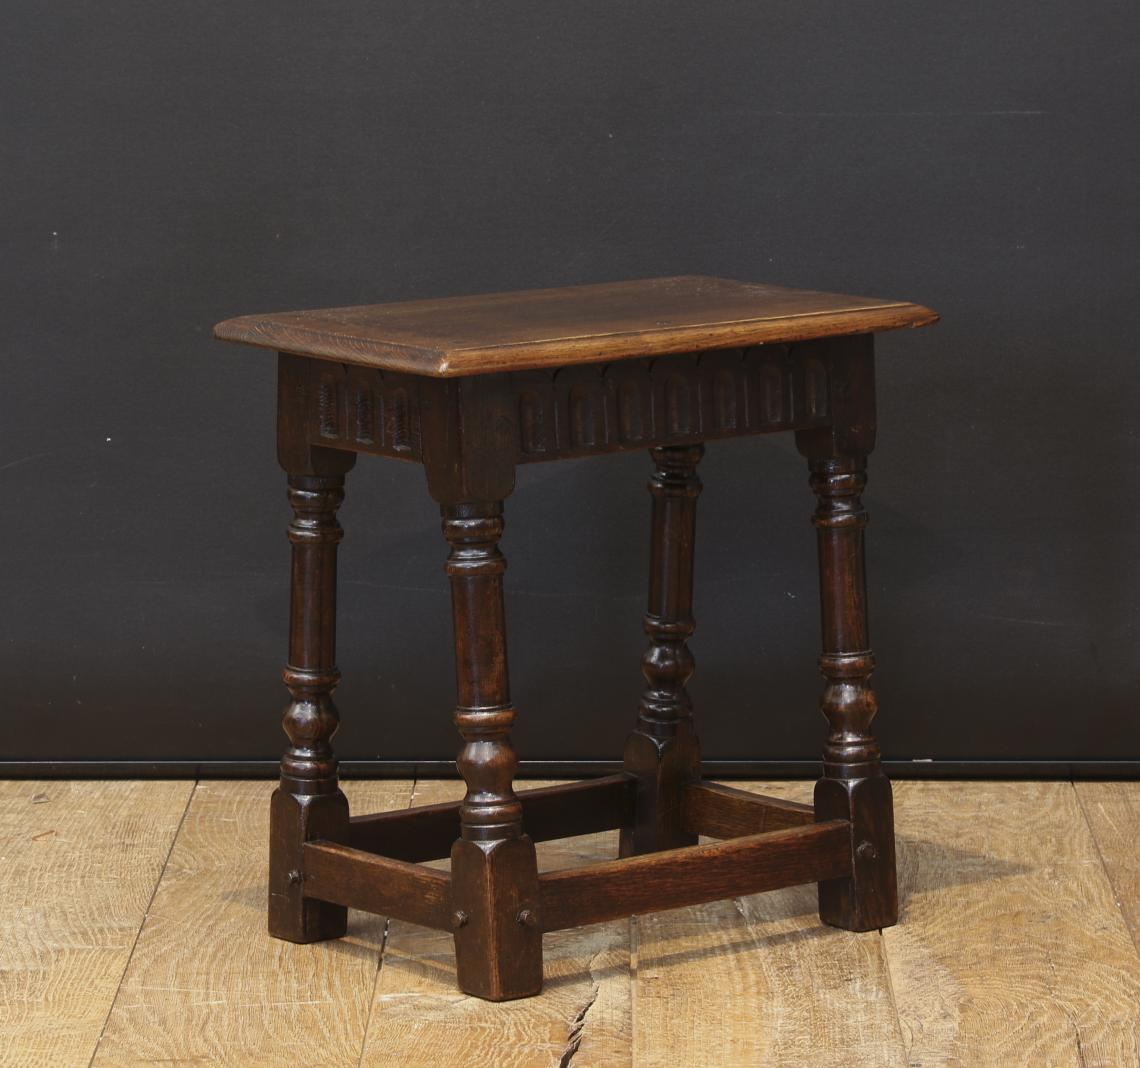 Jointed Stool